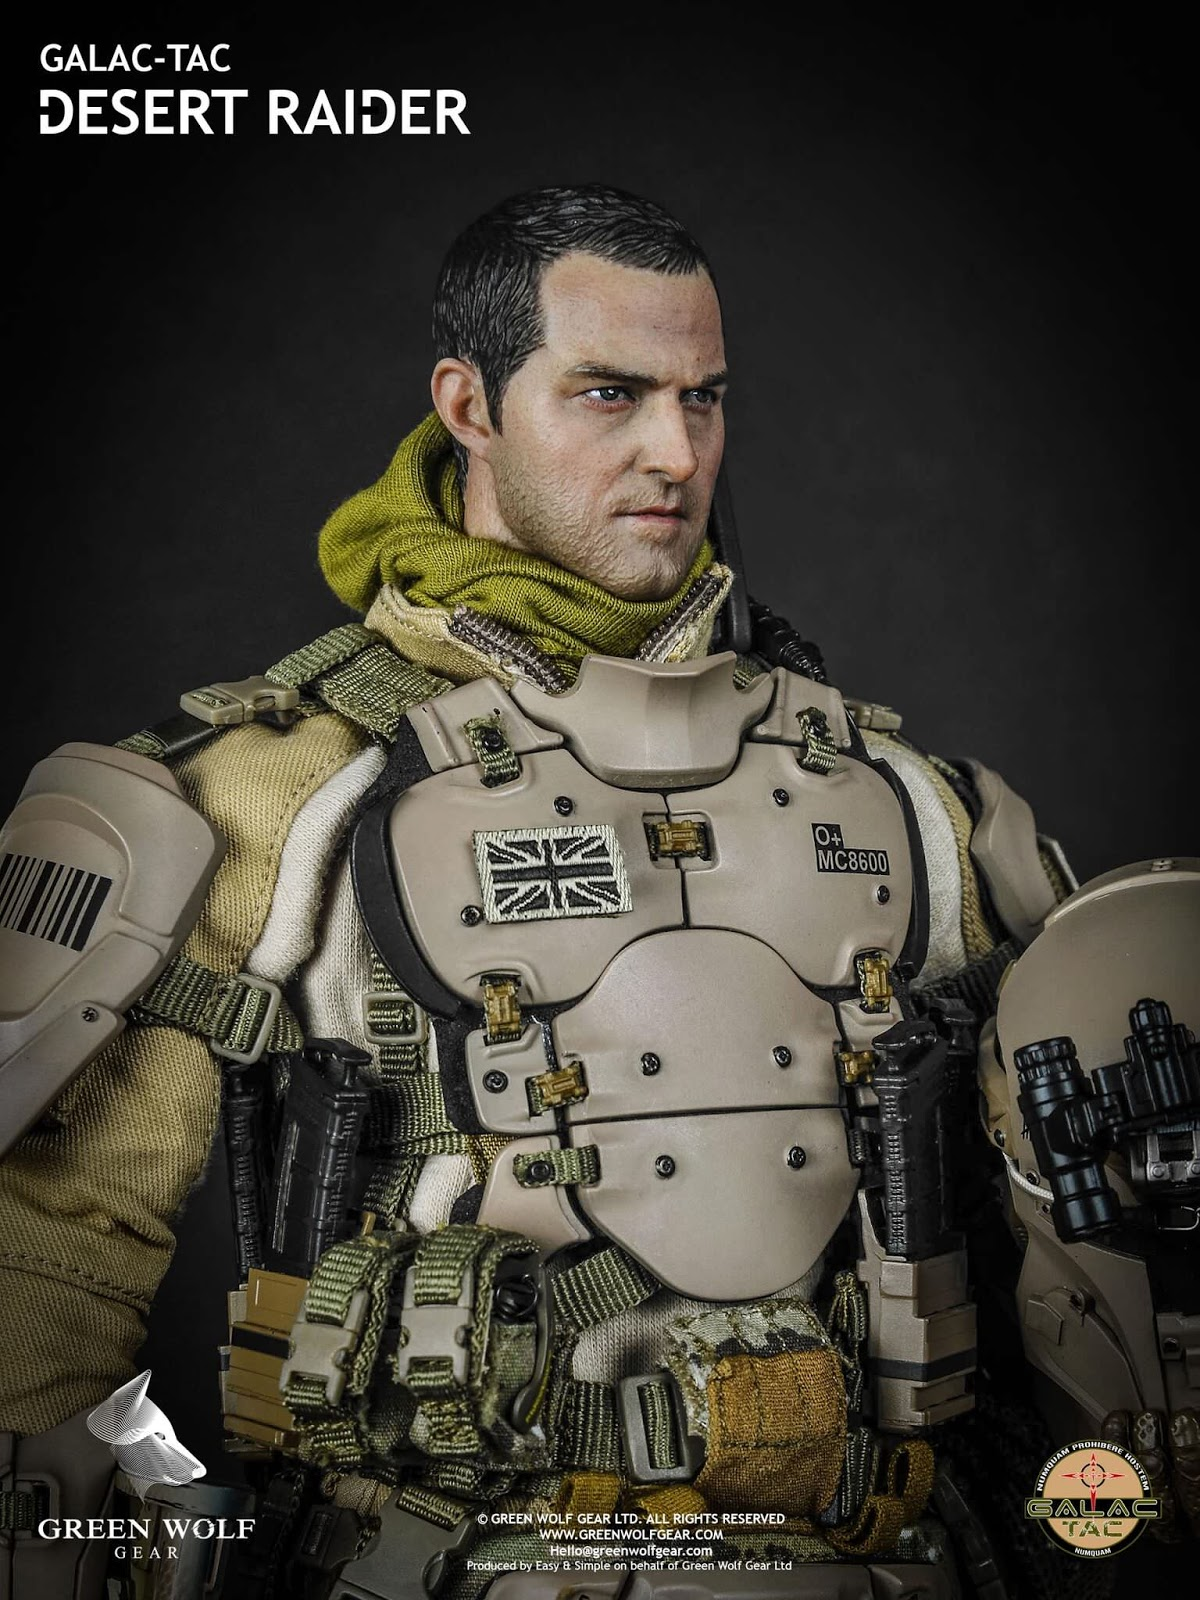 toyhaven new from green wolf gwg 004 1 6th scale galac tac desert raider 12 inch figure preview. Black Bedroom Furniture Sets. Home Design Ideas